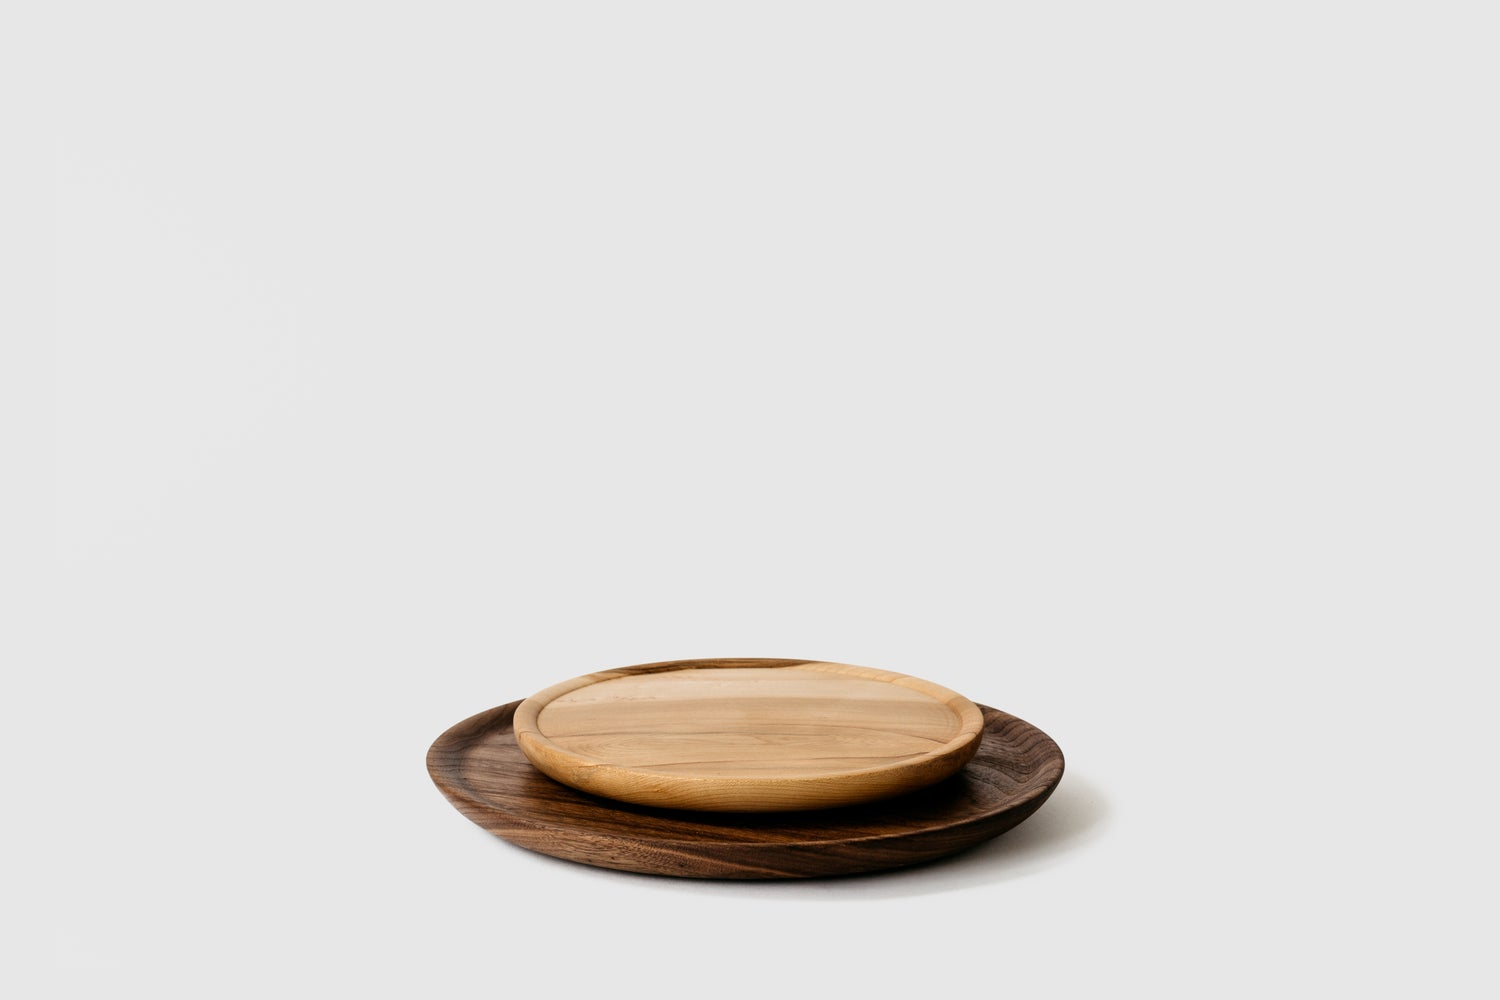 Image of Small Hardwood Plate